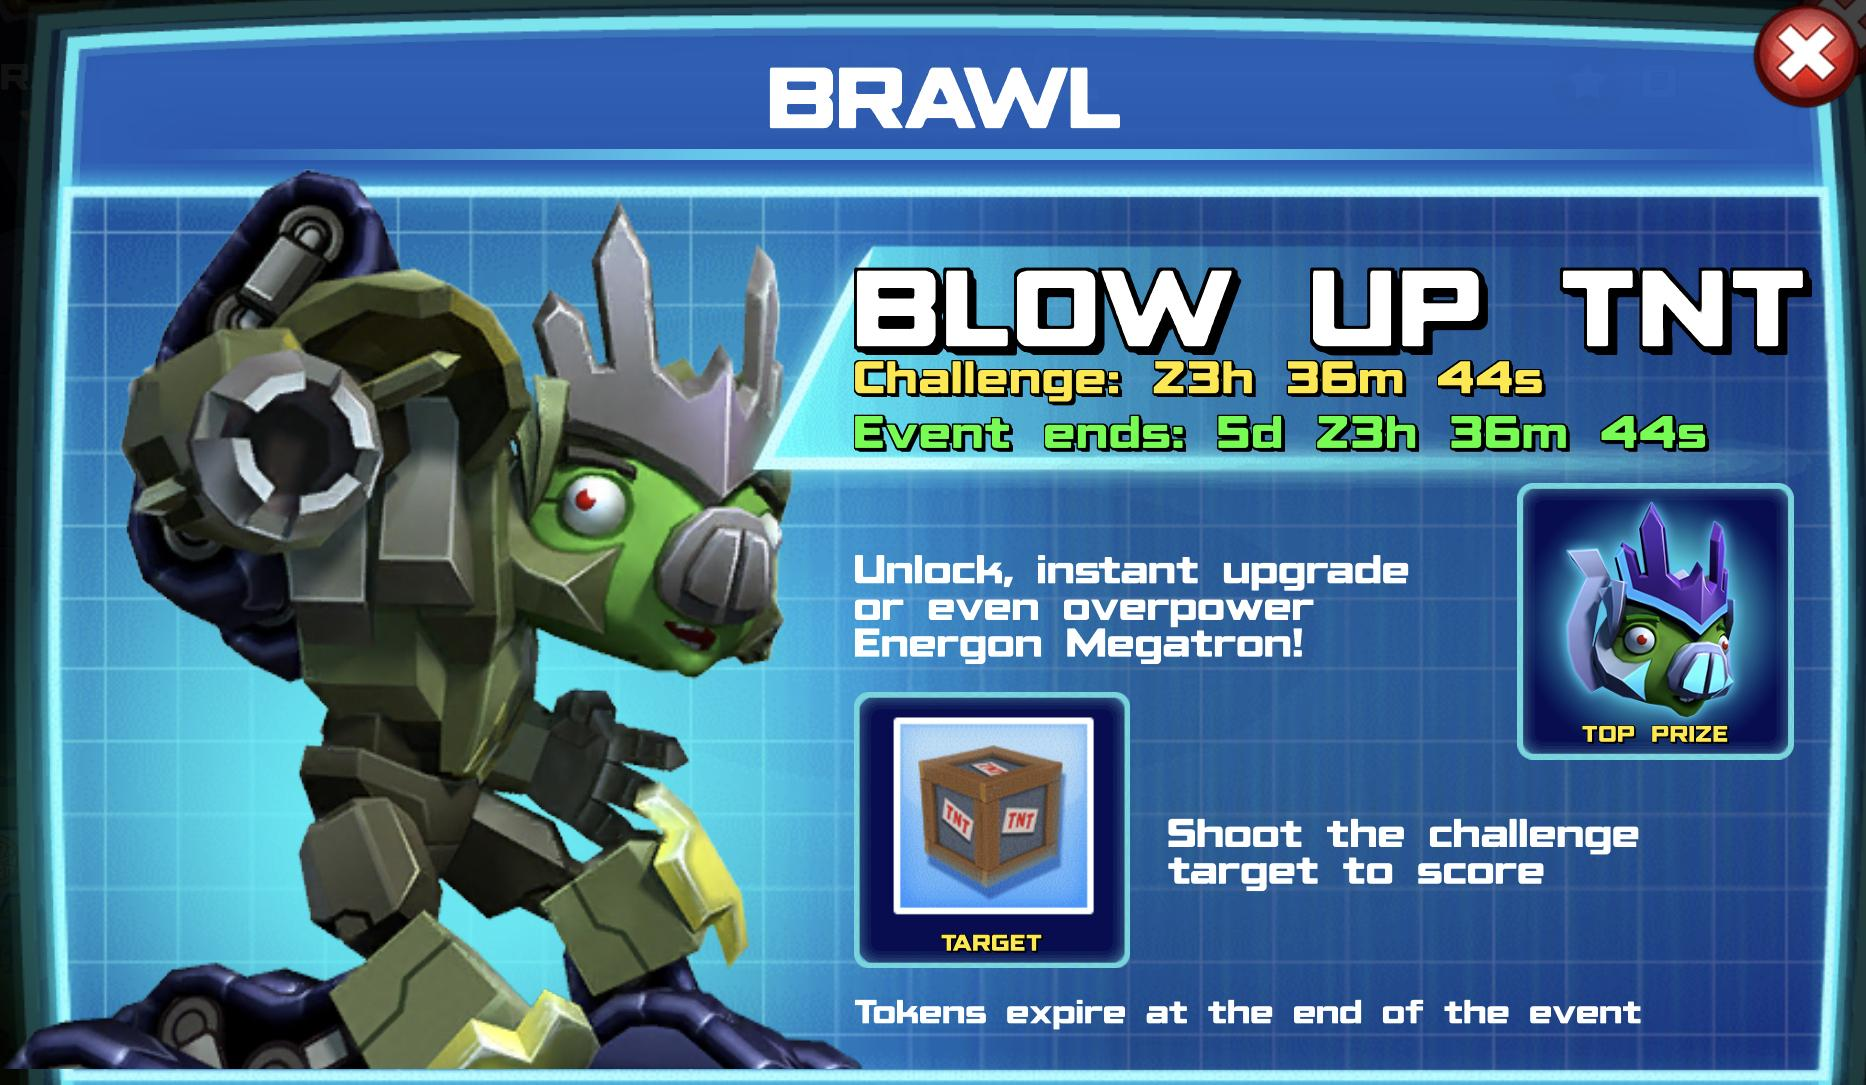 The event banner for Brawl